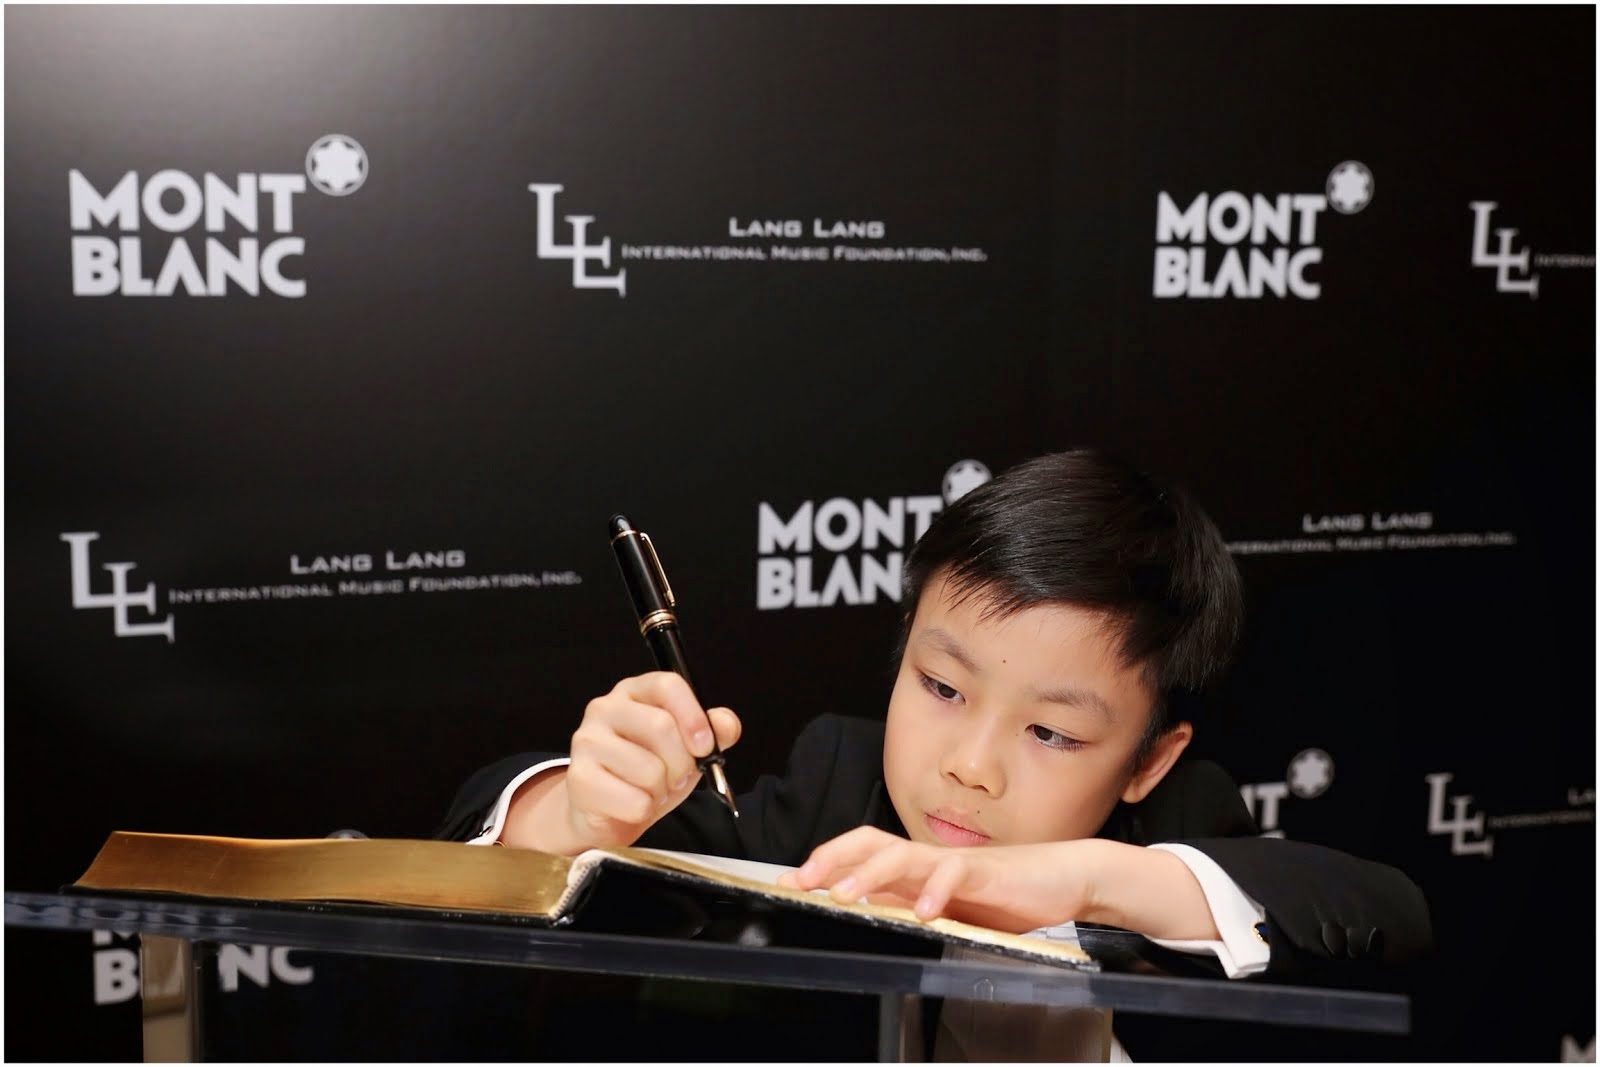 00O00 Menswear Blog: Montblanc and The Lang Lang International Music Foundation Inaugural Gala June 2013